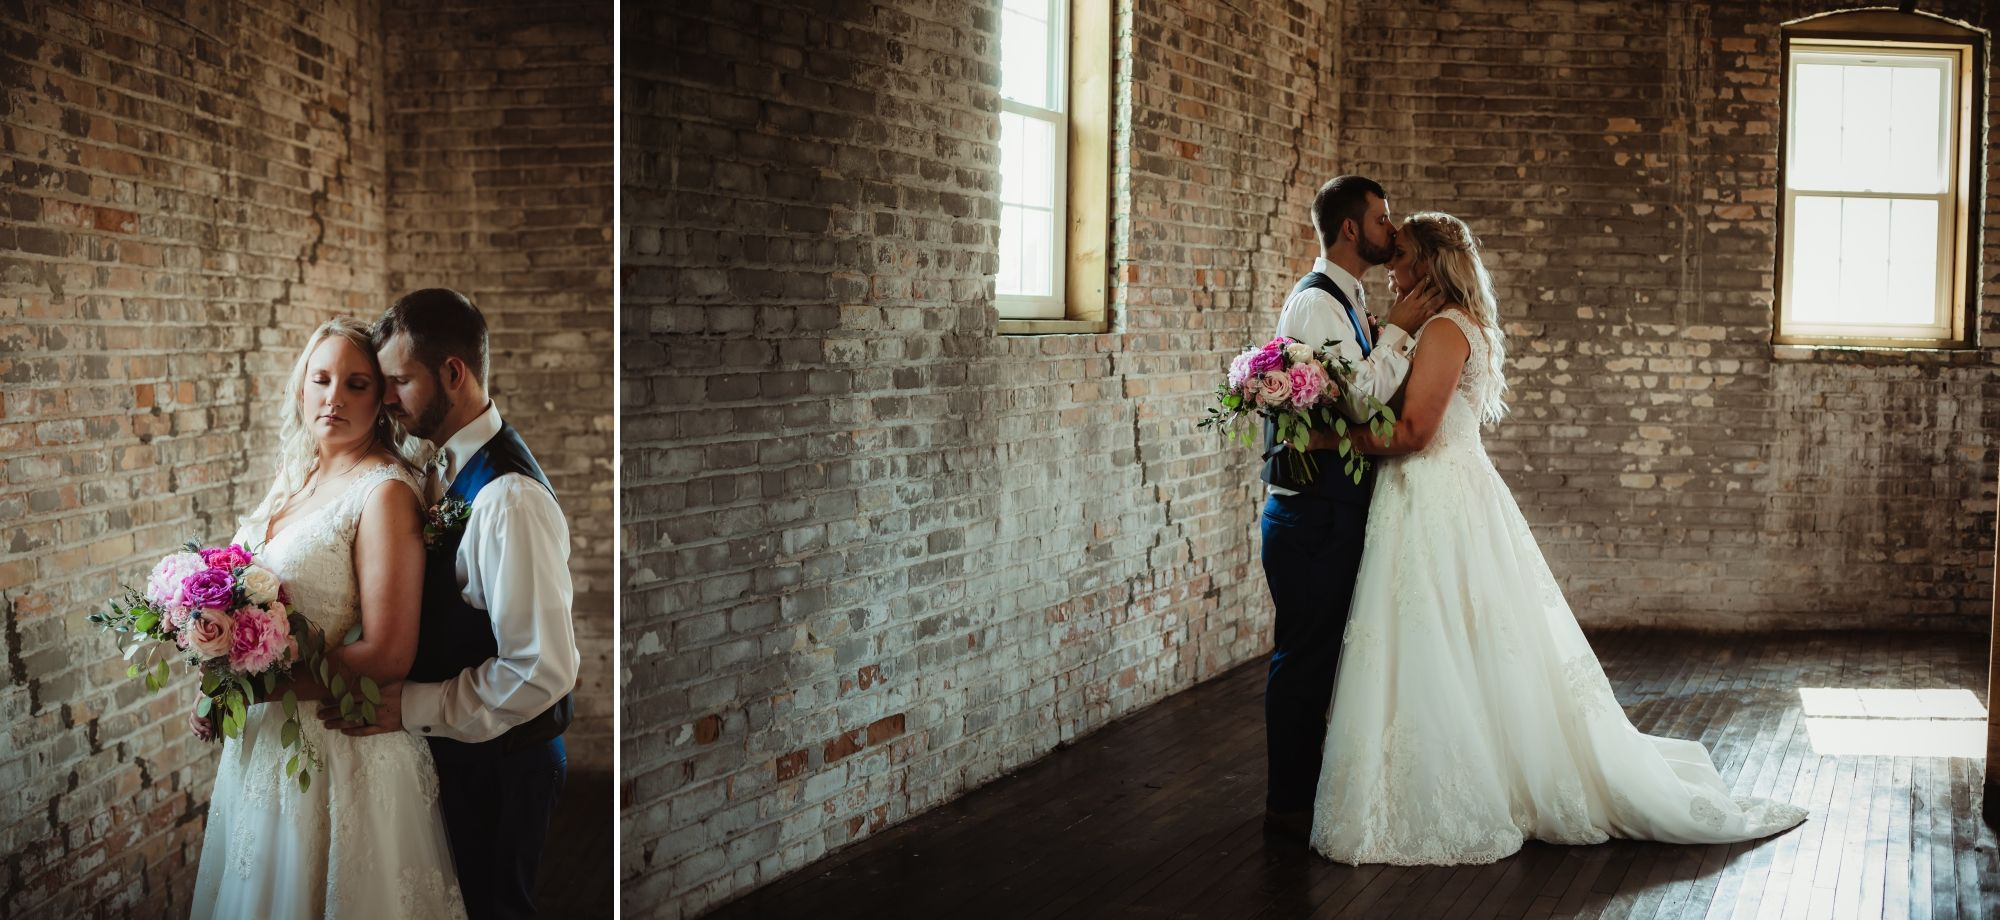 Wedding couple embracing with the groom kissing bride's forehead in an old brick building.